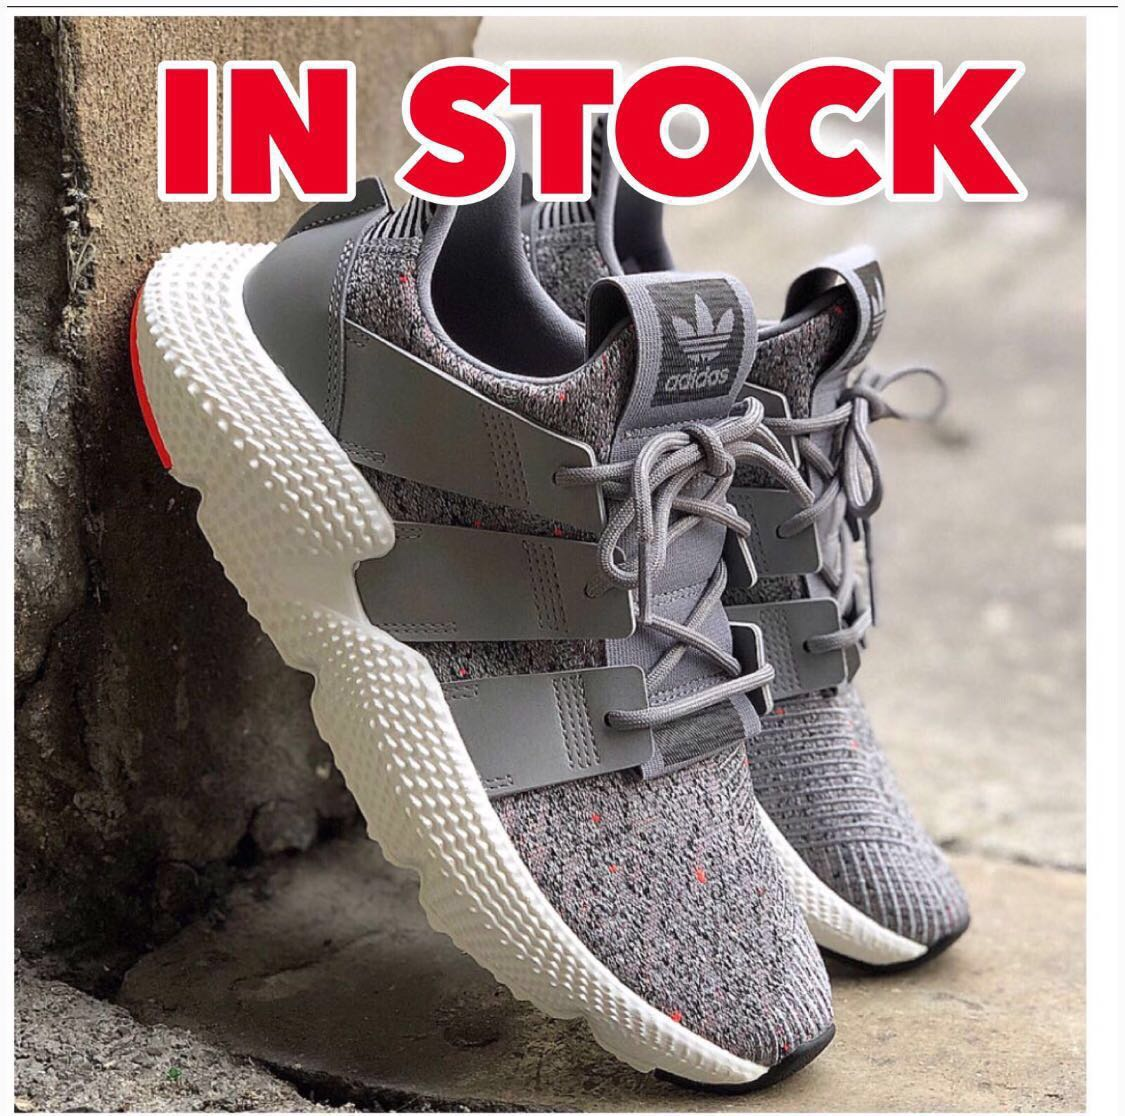 0fc235e1 In Stock Men's Adidas Originals Prophere Casual ShoesUpdated Actual ...